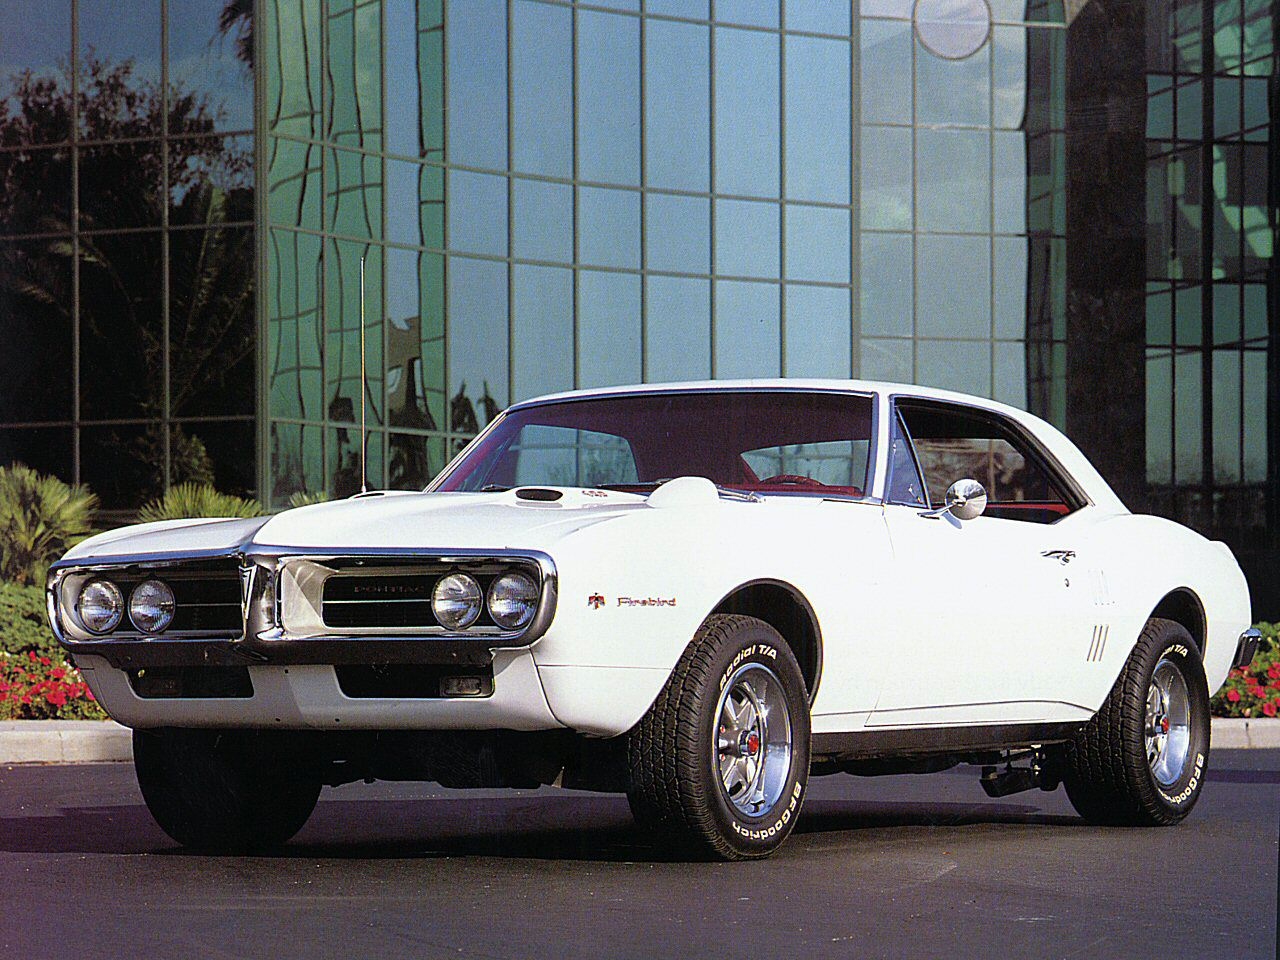 File 1967 Pontiac Firebird 400 Sport Coupe w Hood Tac h White Low Frt Qtr also Fourth Range Rover Model Scooped Latest News On Land Rovers X6 Rival together with 2292 in addition History3 additionally Citroen Ds4 Courant Alternatif 479367. on morgan coupe